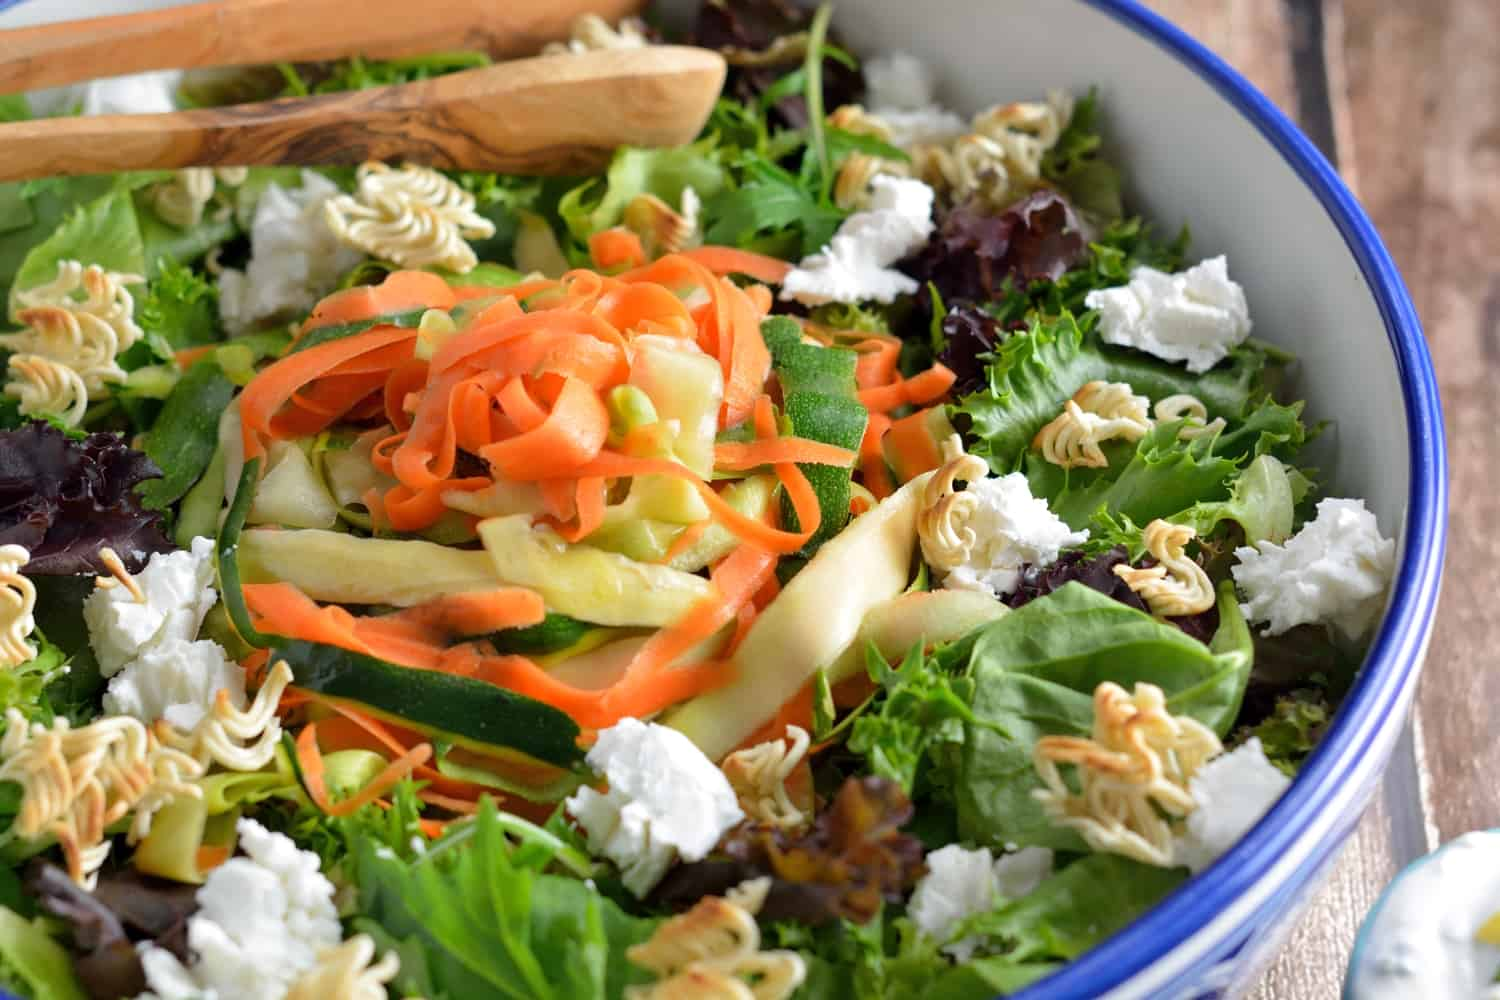 Shaved Zucchini Salad with Lemon-Chive Dressing - spring greens, soft goat cheese, toasted ramen croutons, marinated zucchini, squash and carrots with a yogurt-based lemon chive dressing. www.savoryexperiments.com